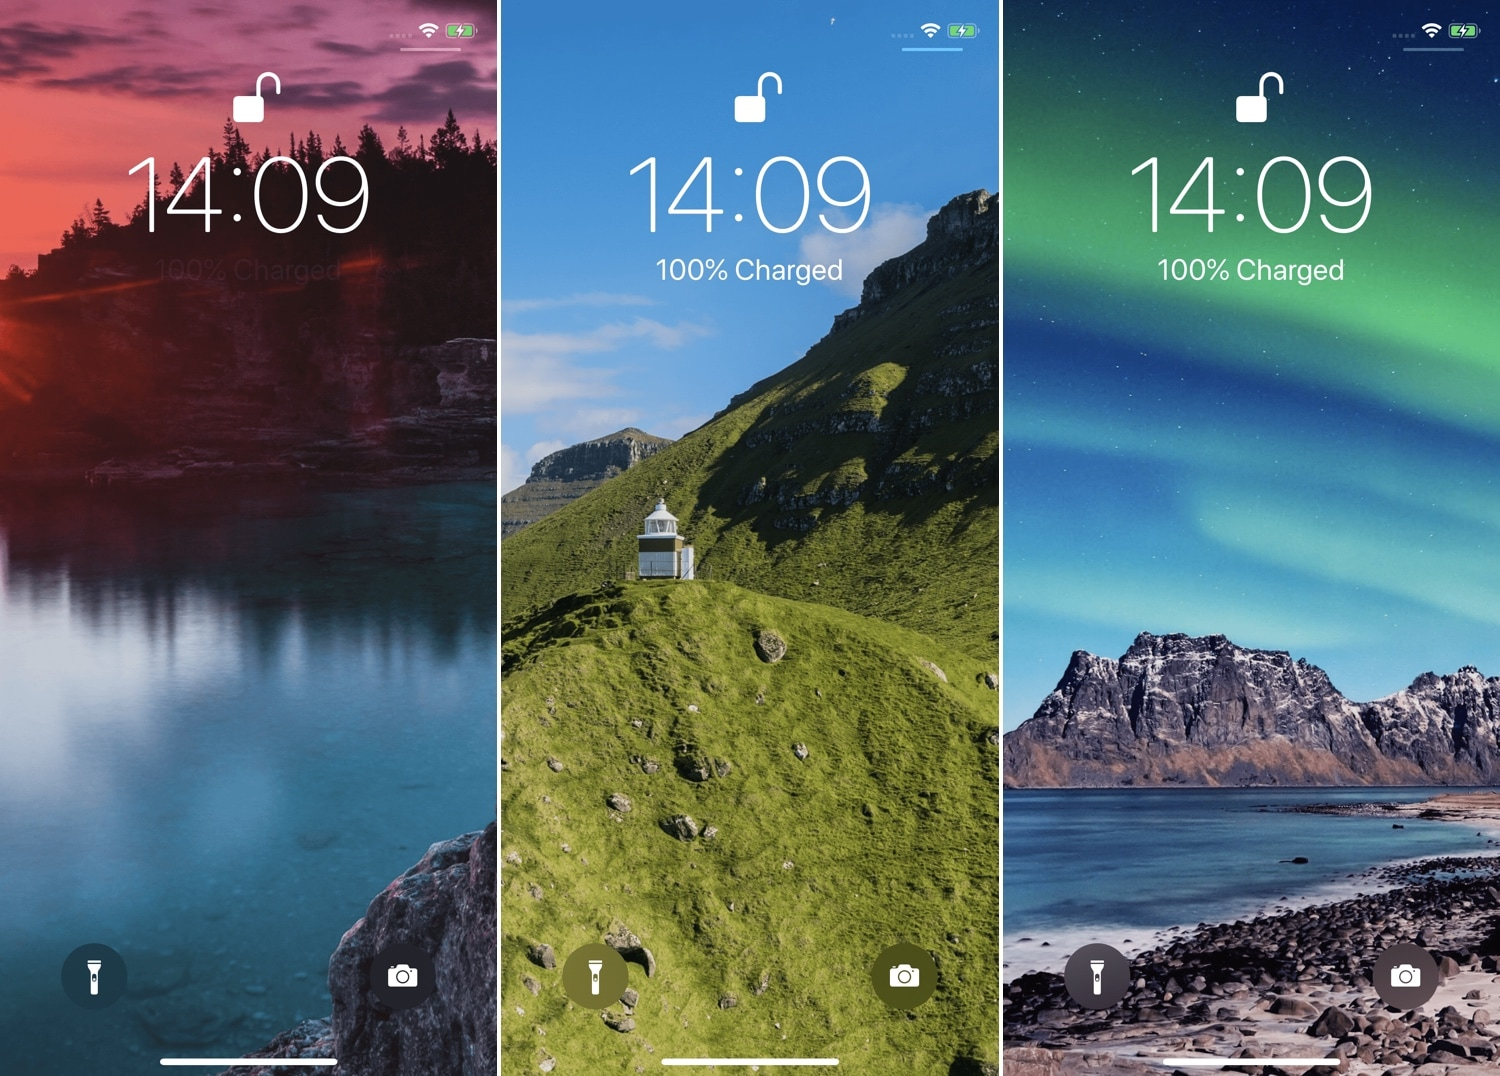 FreshWall gives you a new wallpaper to look at every time you unlock